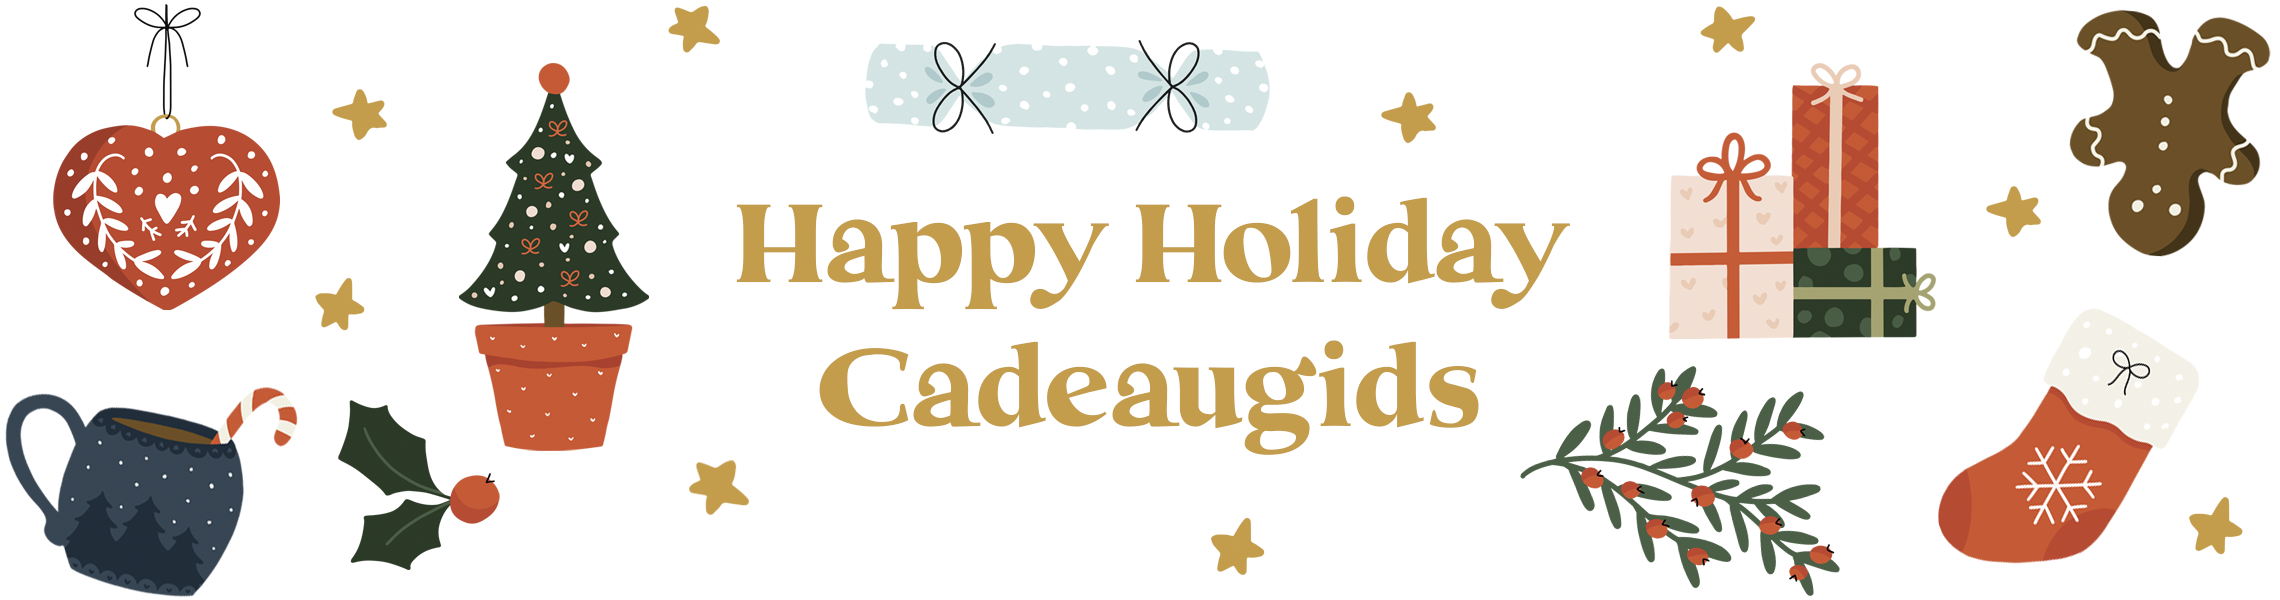 Happy Holiday Cadeaugids